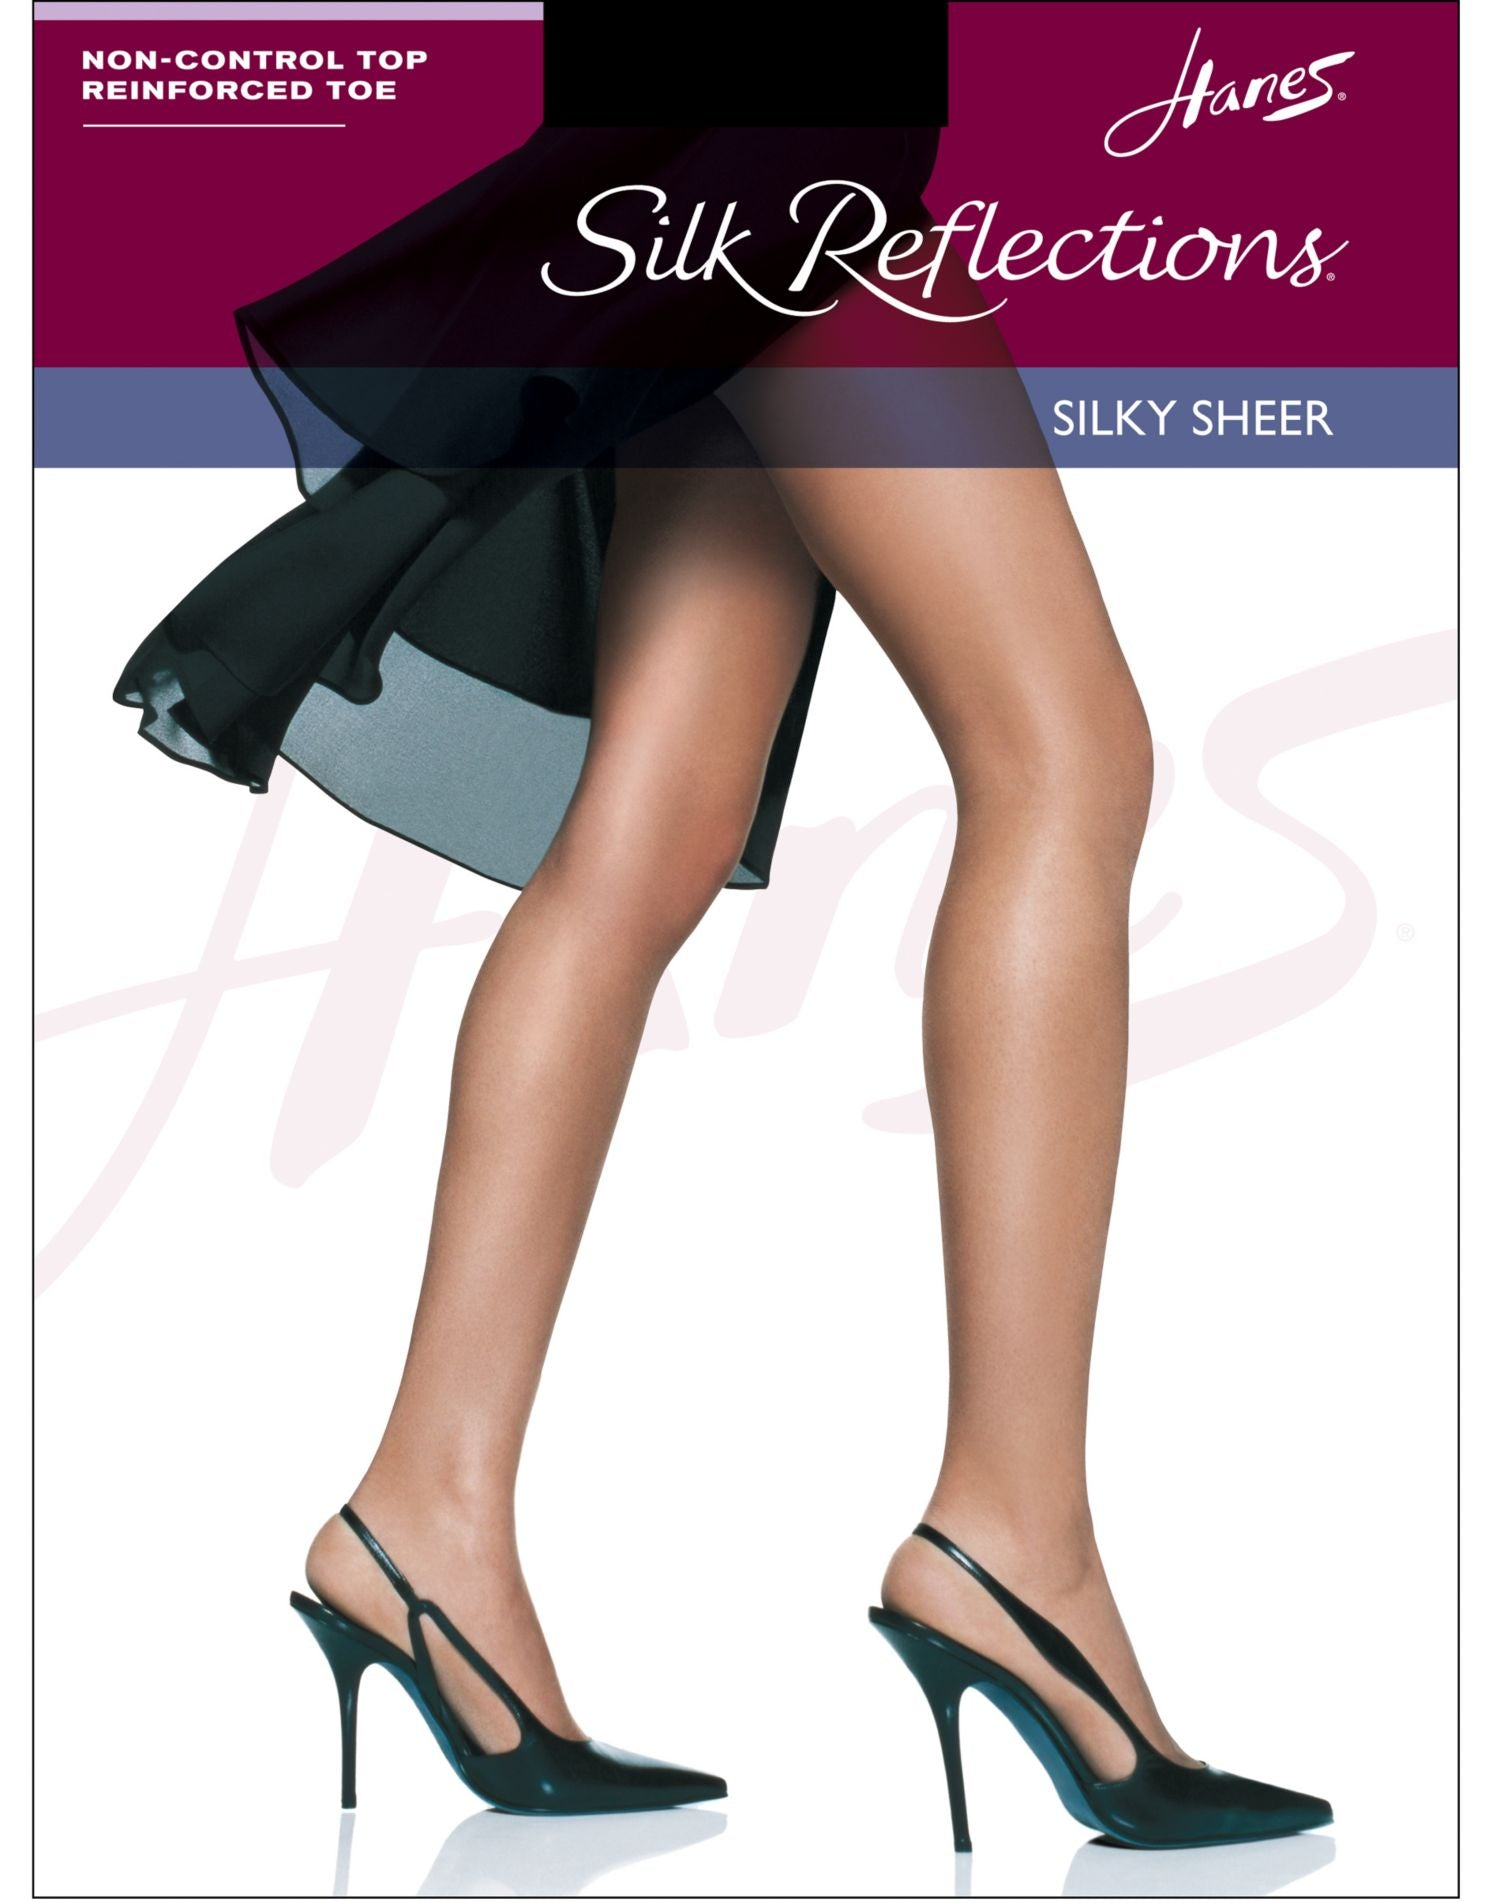 68a0388cd 00716 - Hanes Silk Reflections Non-Control Top